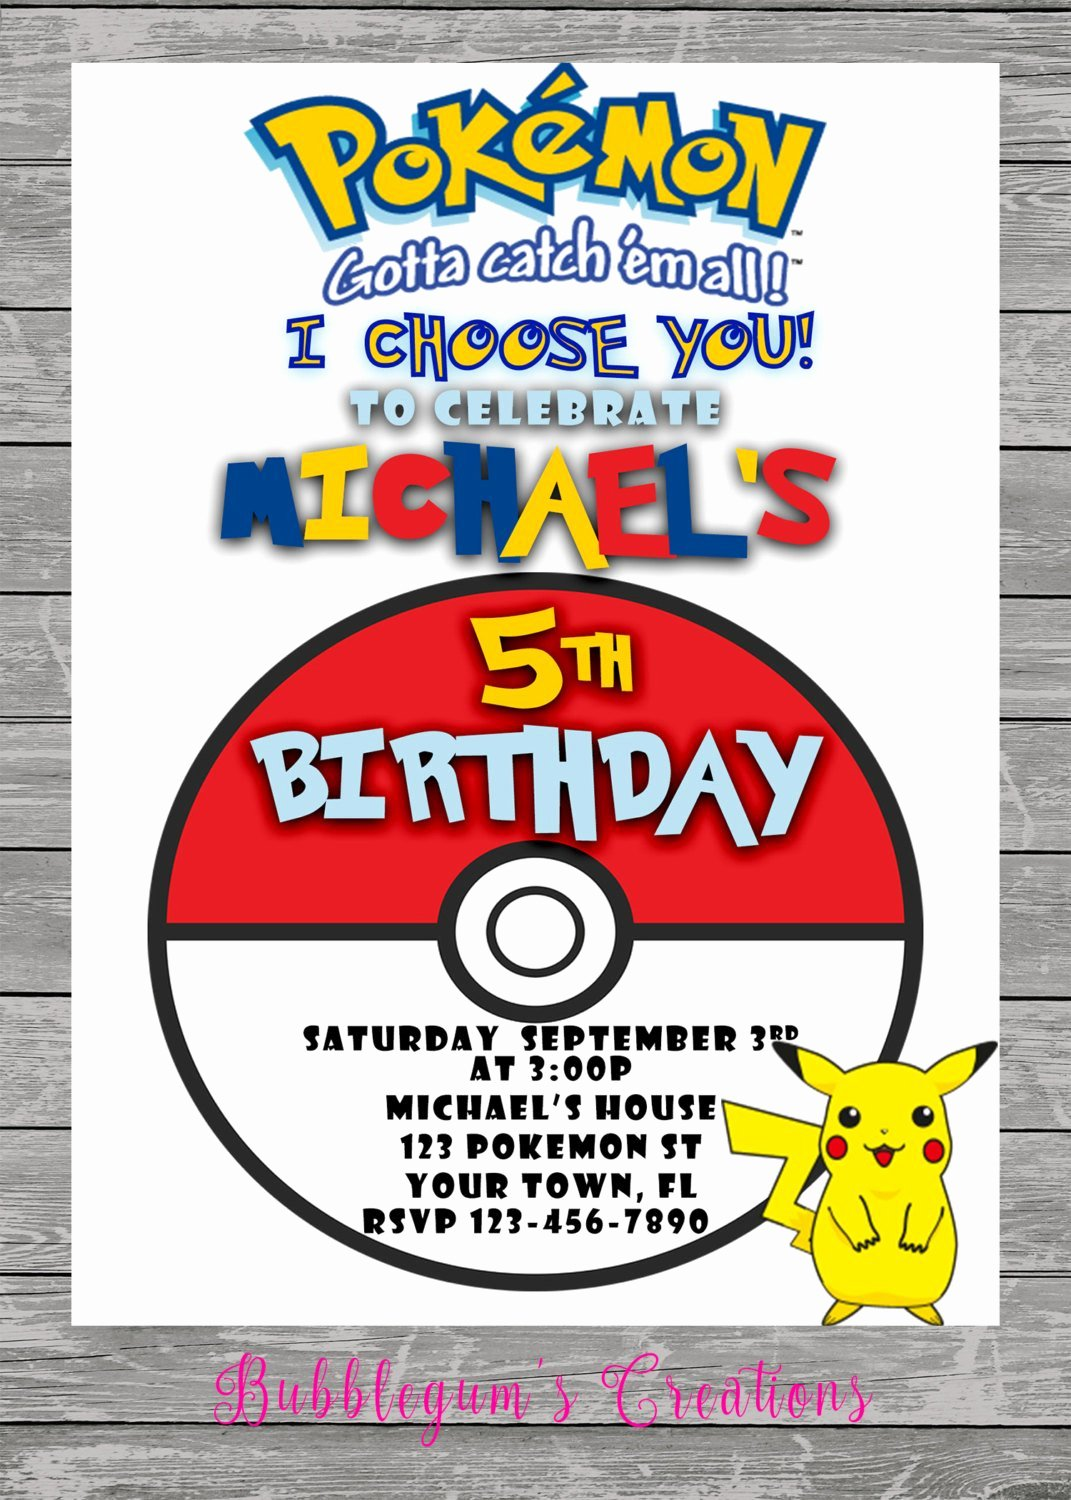 Pokemon Invitation Template Free Inspirational Pokemon Go Birthday Invitation Pokemon Invite